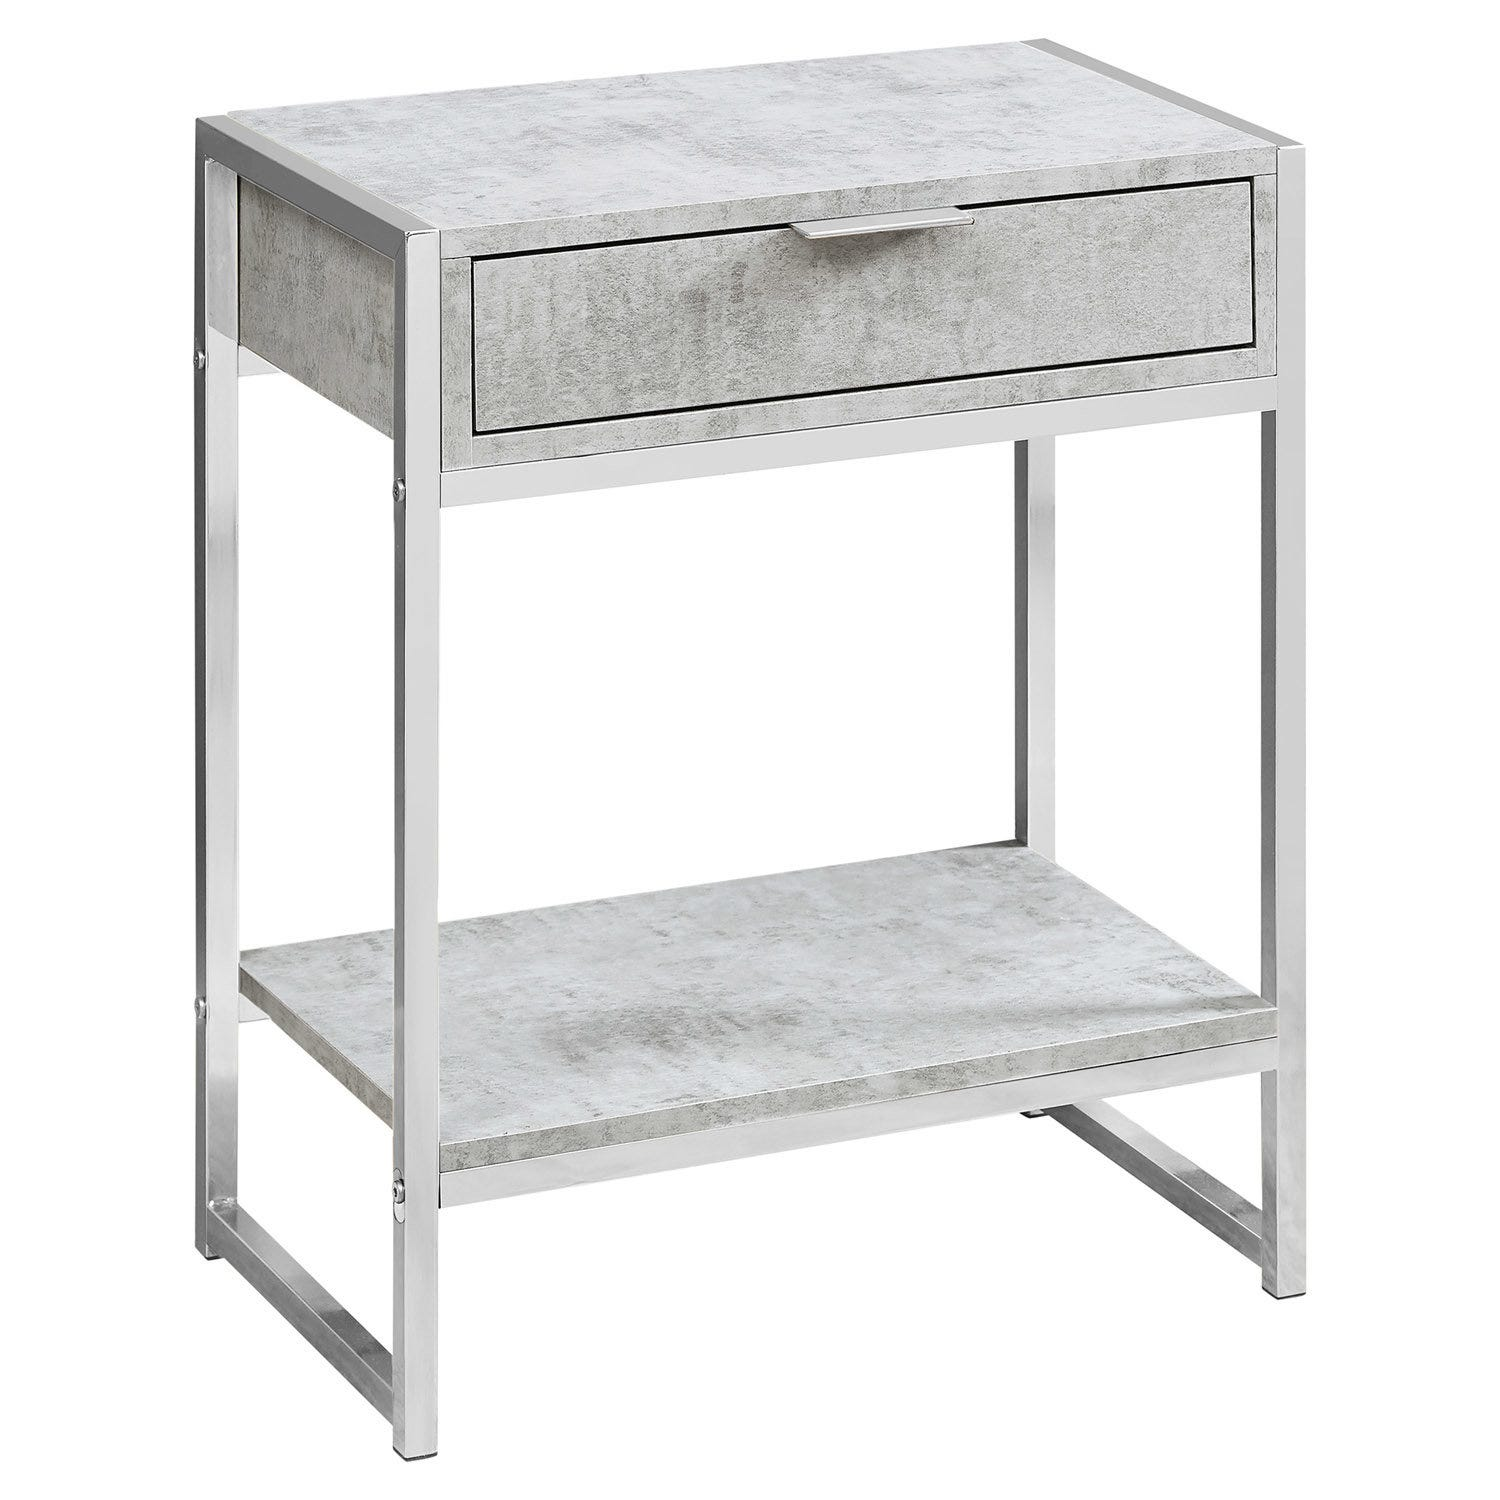 Accent Table 24 H Grey Cement Chrome Metal